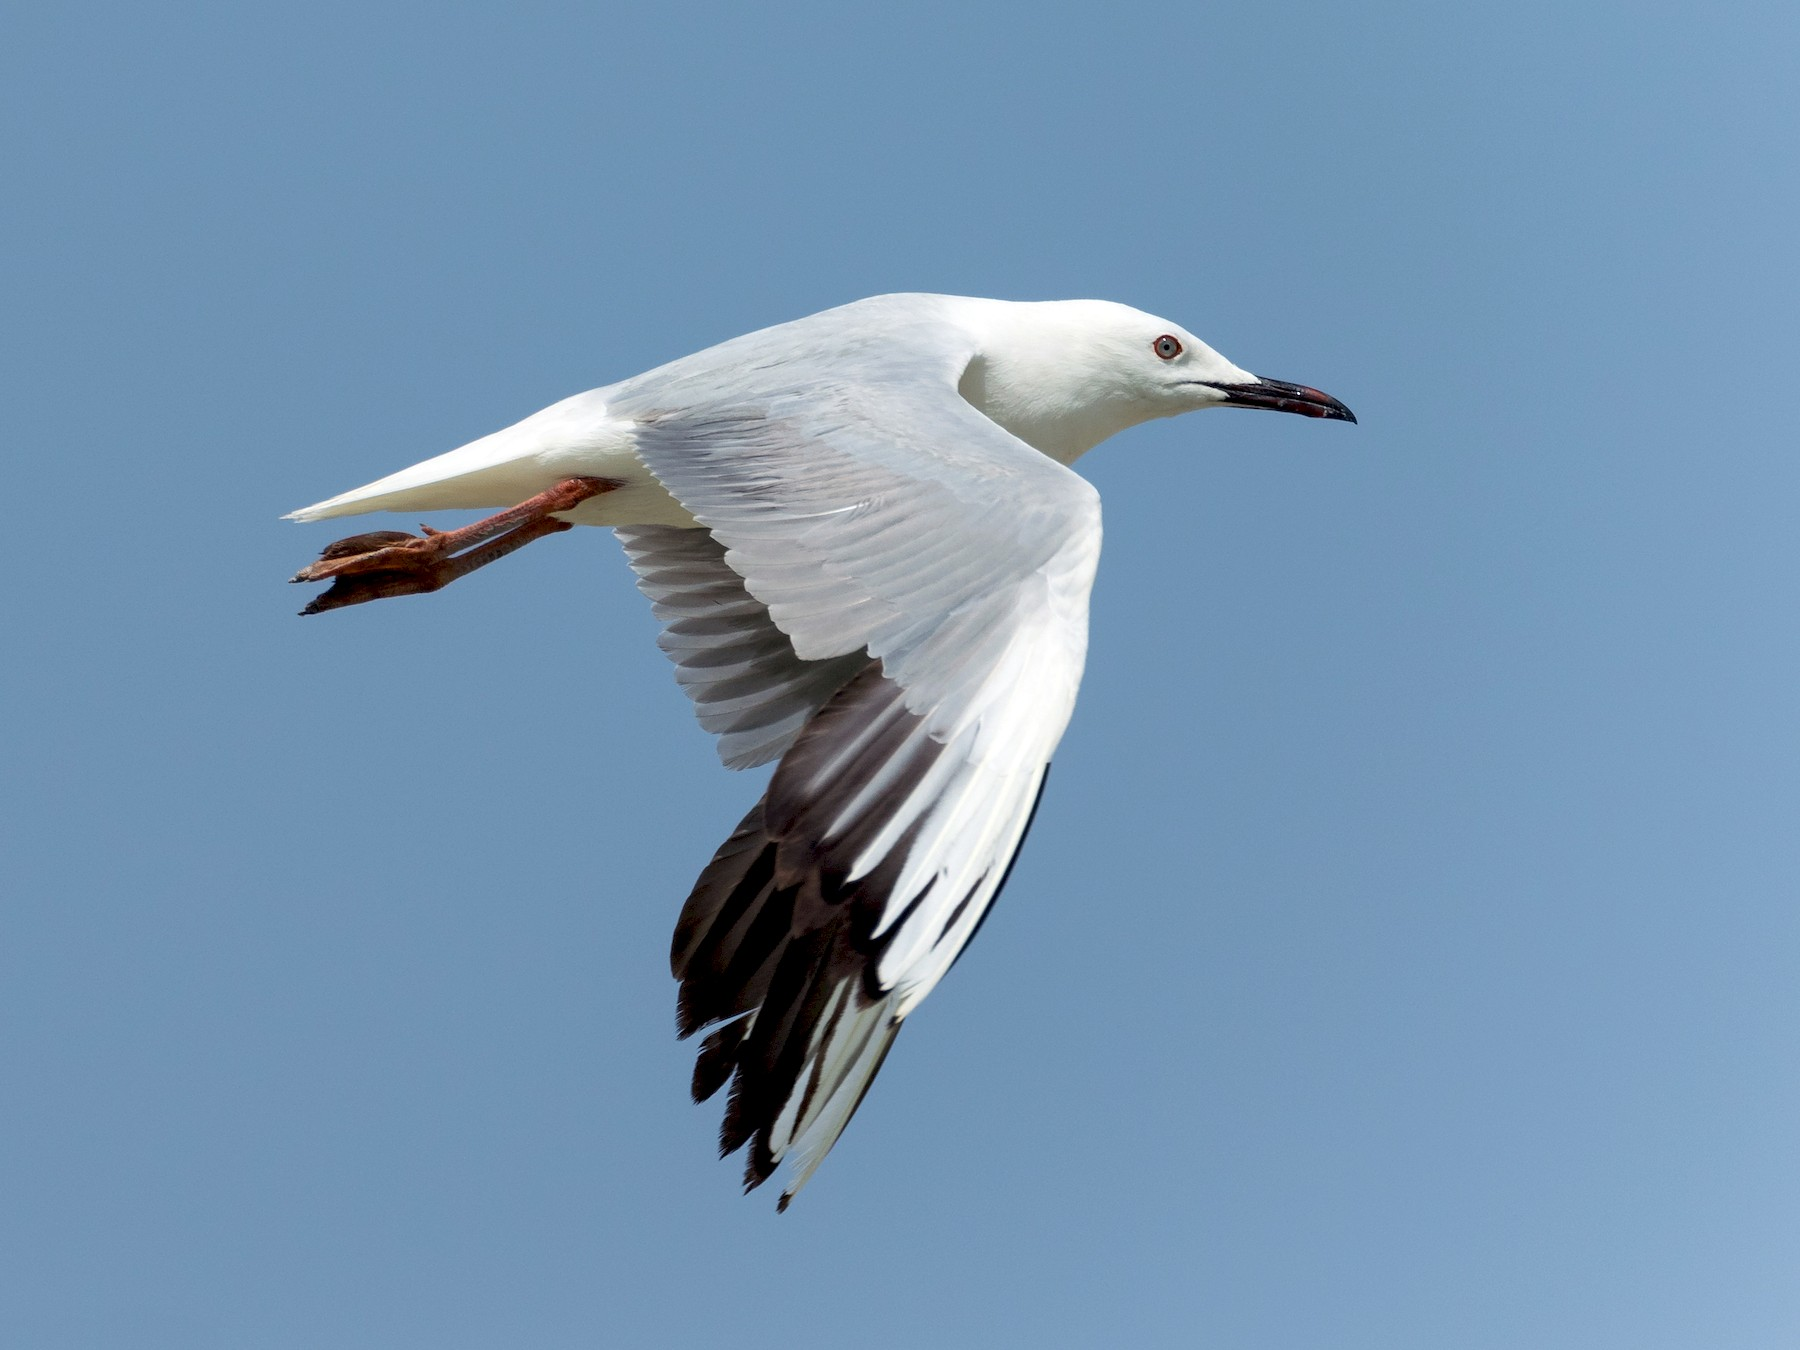 Slender-billed Gull - Markus Craig